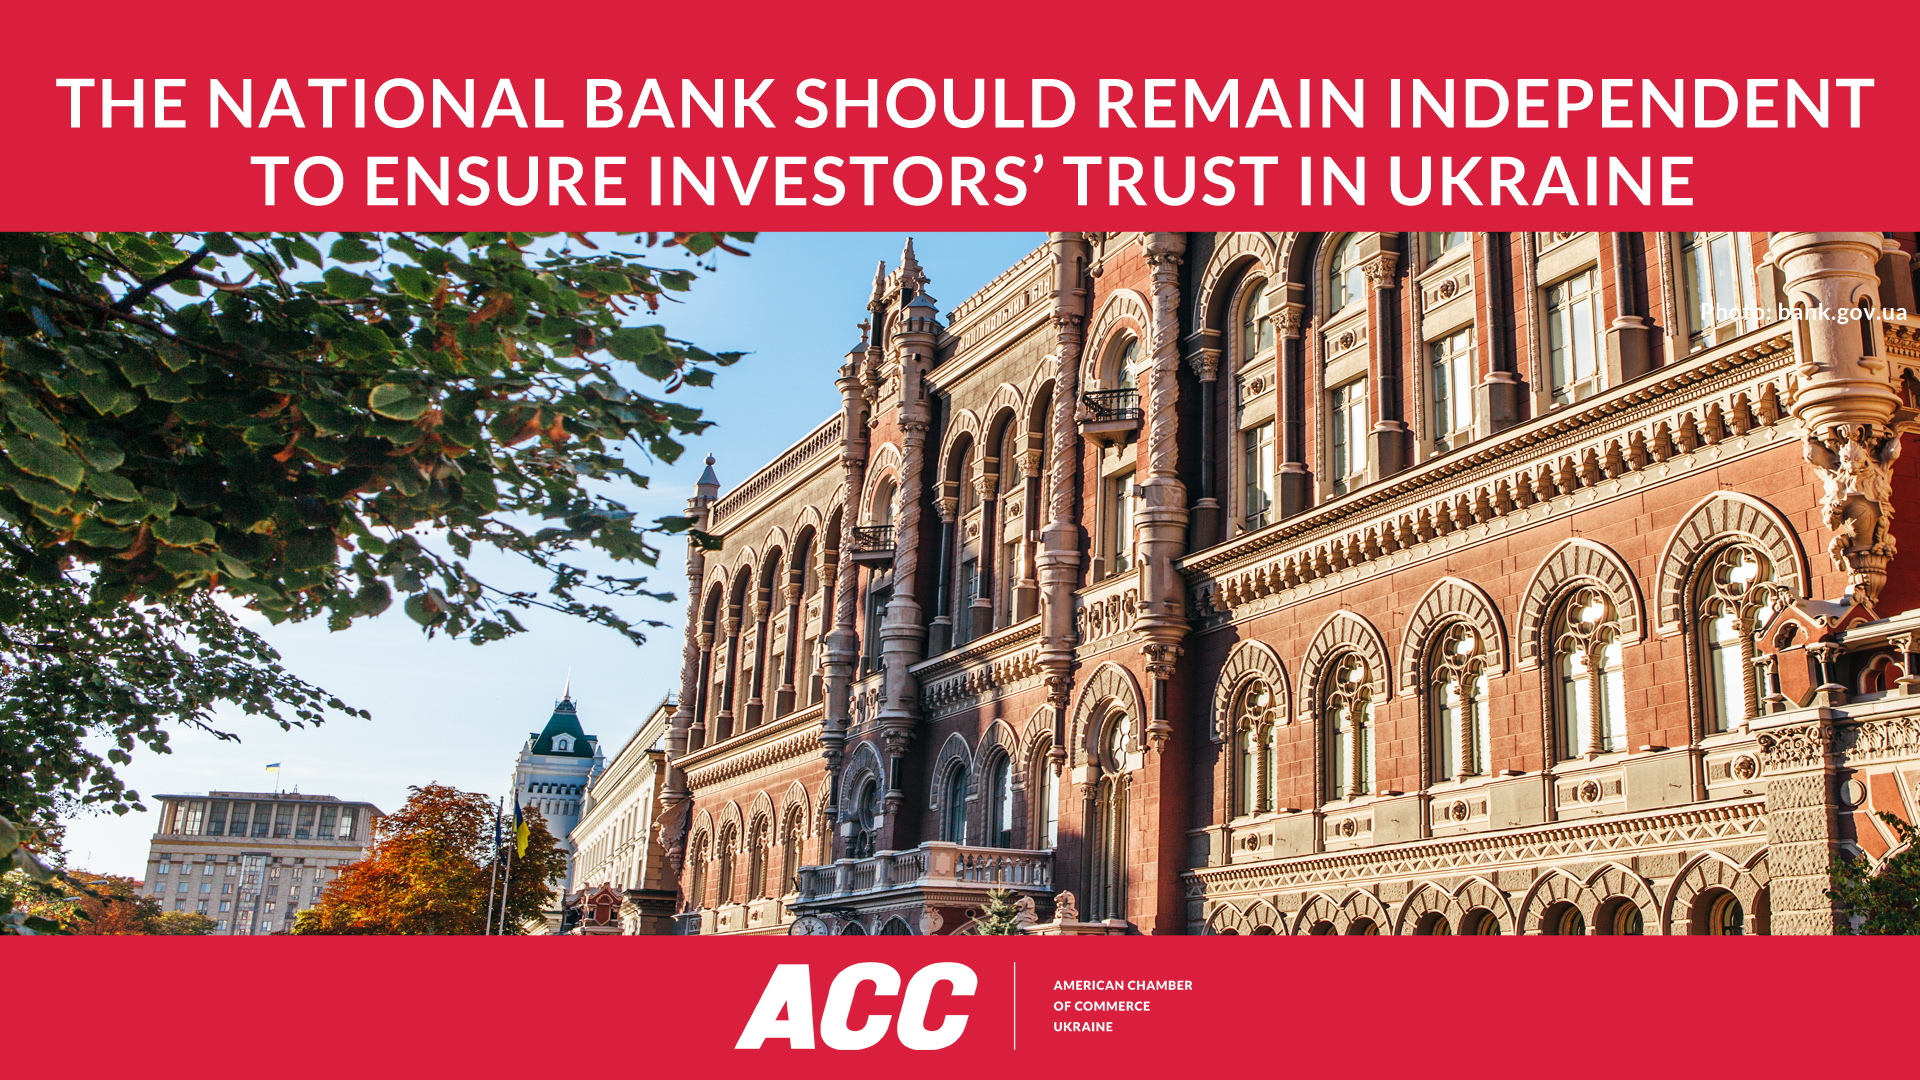 The National Bank Should Remain Independent to Ensure Investors' Trust in Ukraine